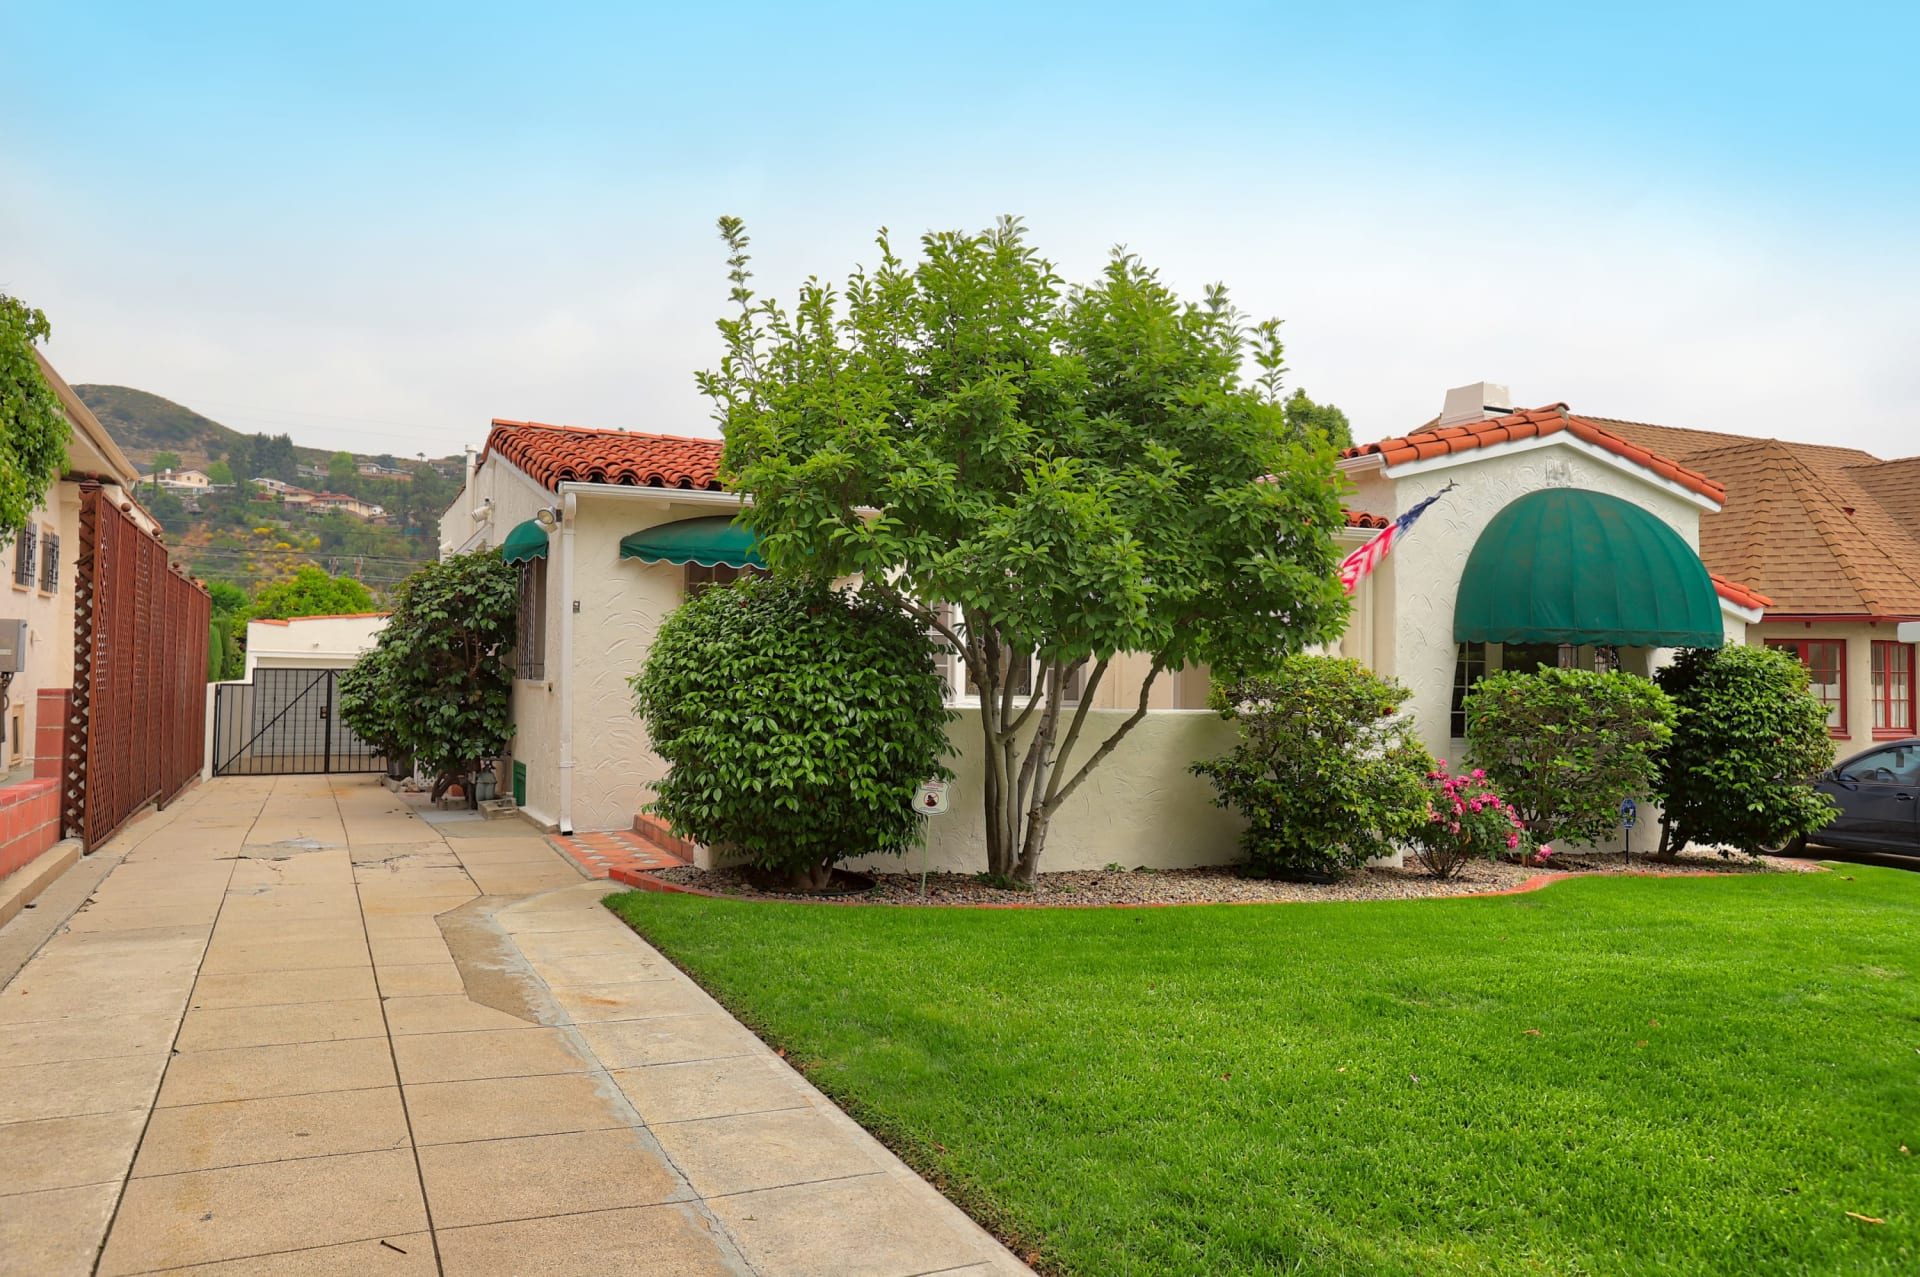 Sold by Edwin Ordubegian | 1324 Moncado Dr. Glendale | An Authentic Spanish Charmer video preview